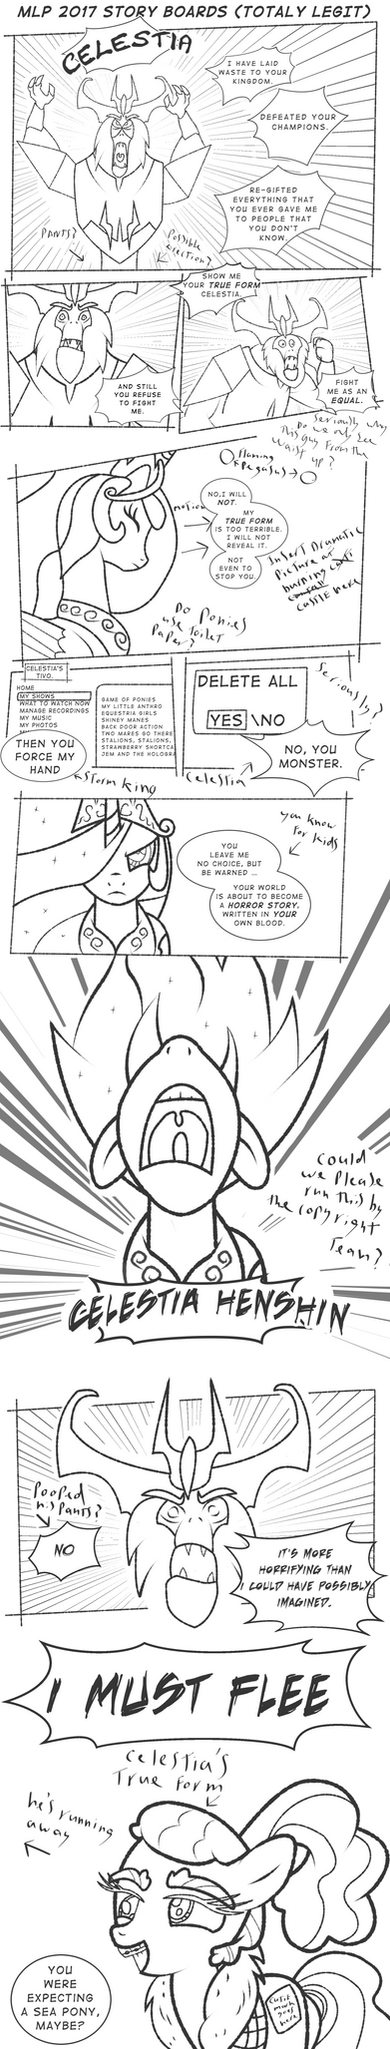 MLP Movie 2017 LEAKED STORY BOARDS (Totally Legit) by PerfectBlue97